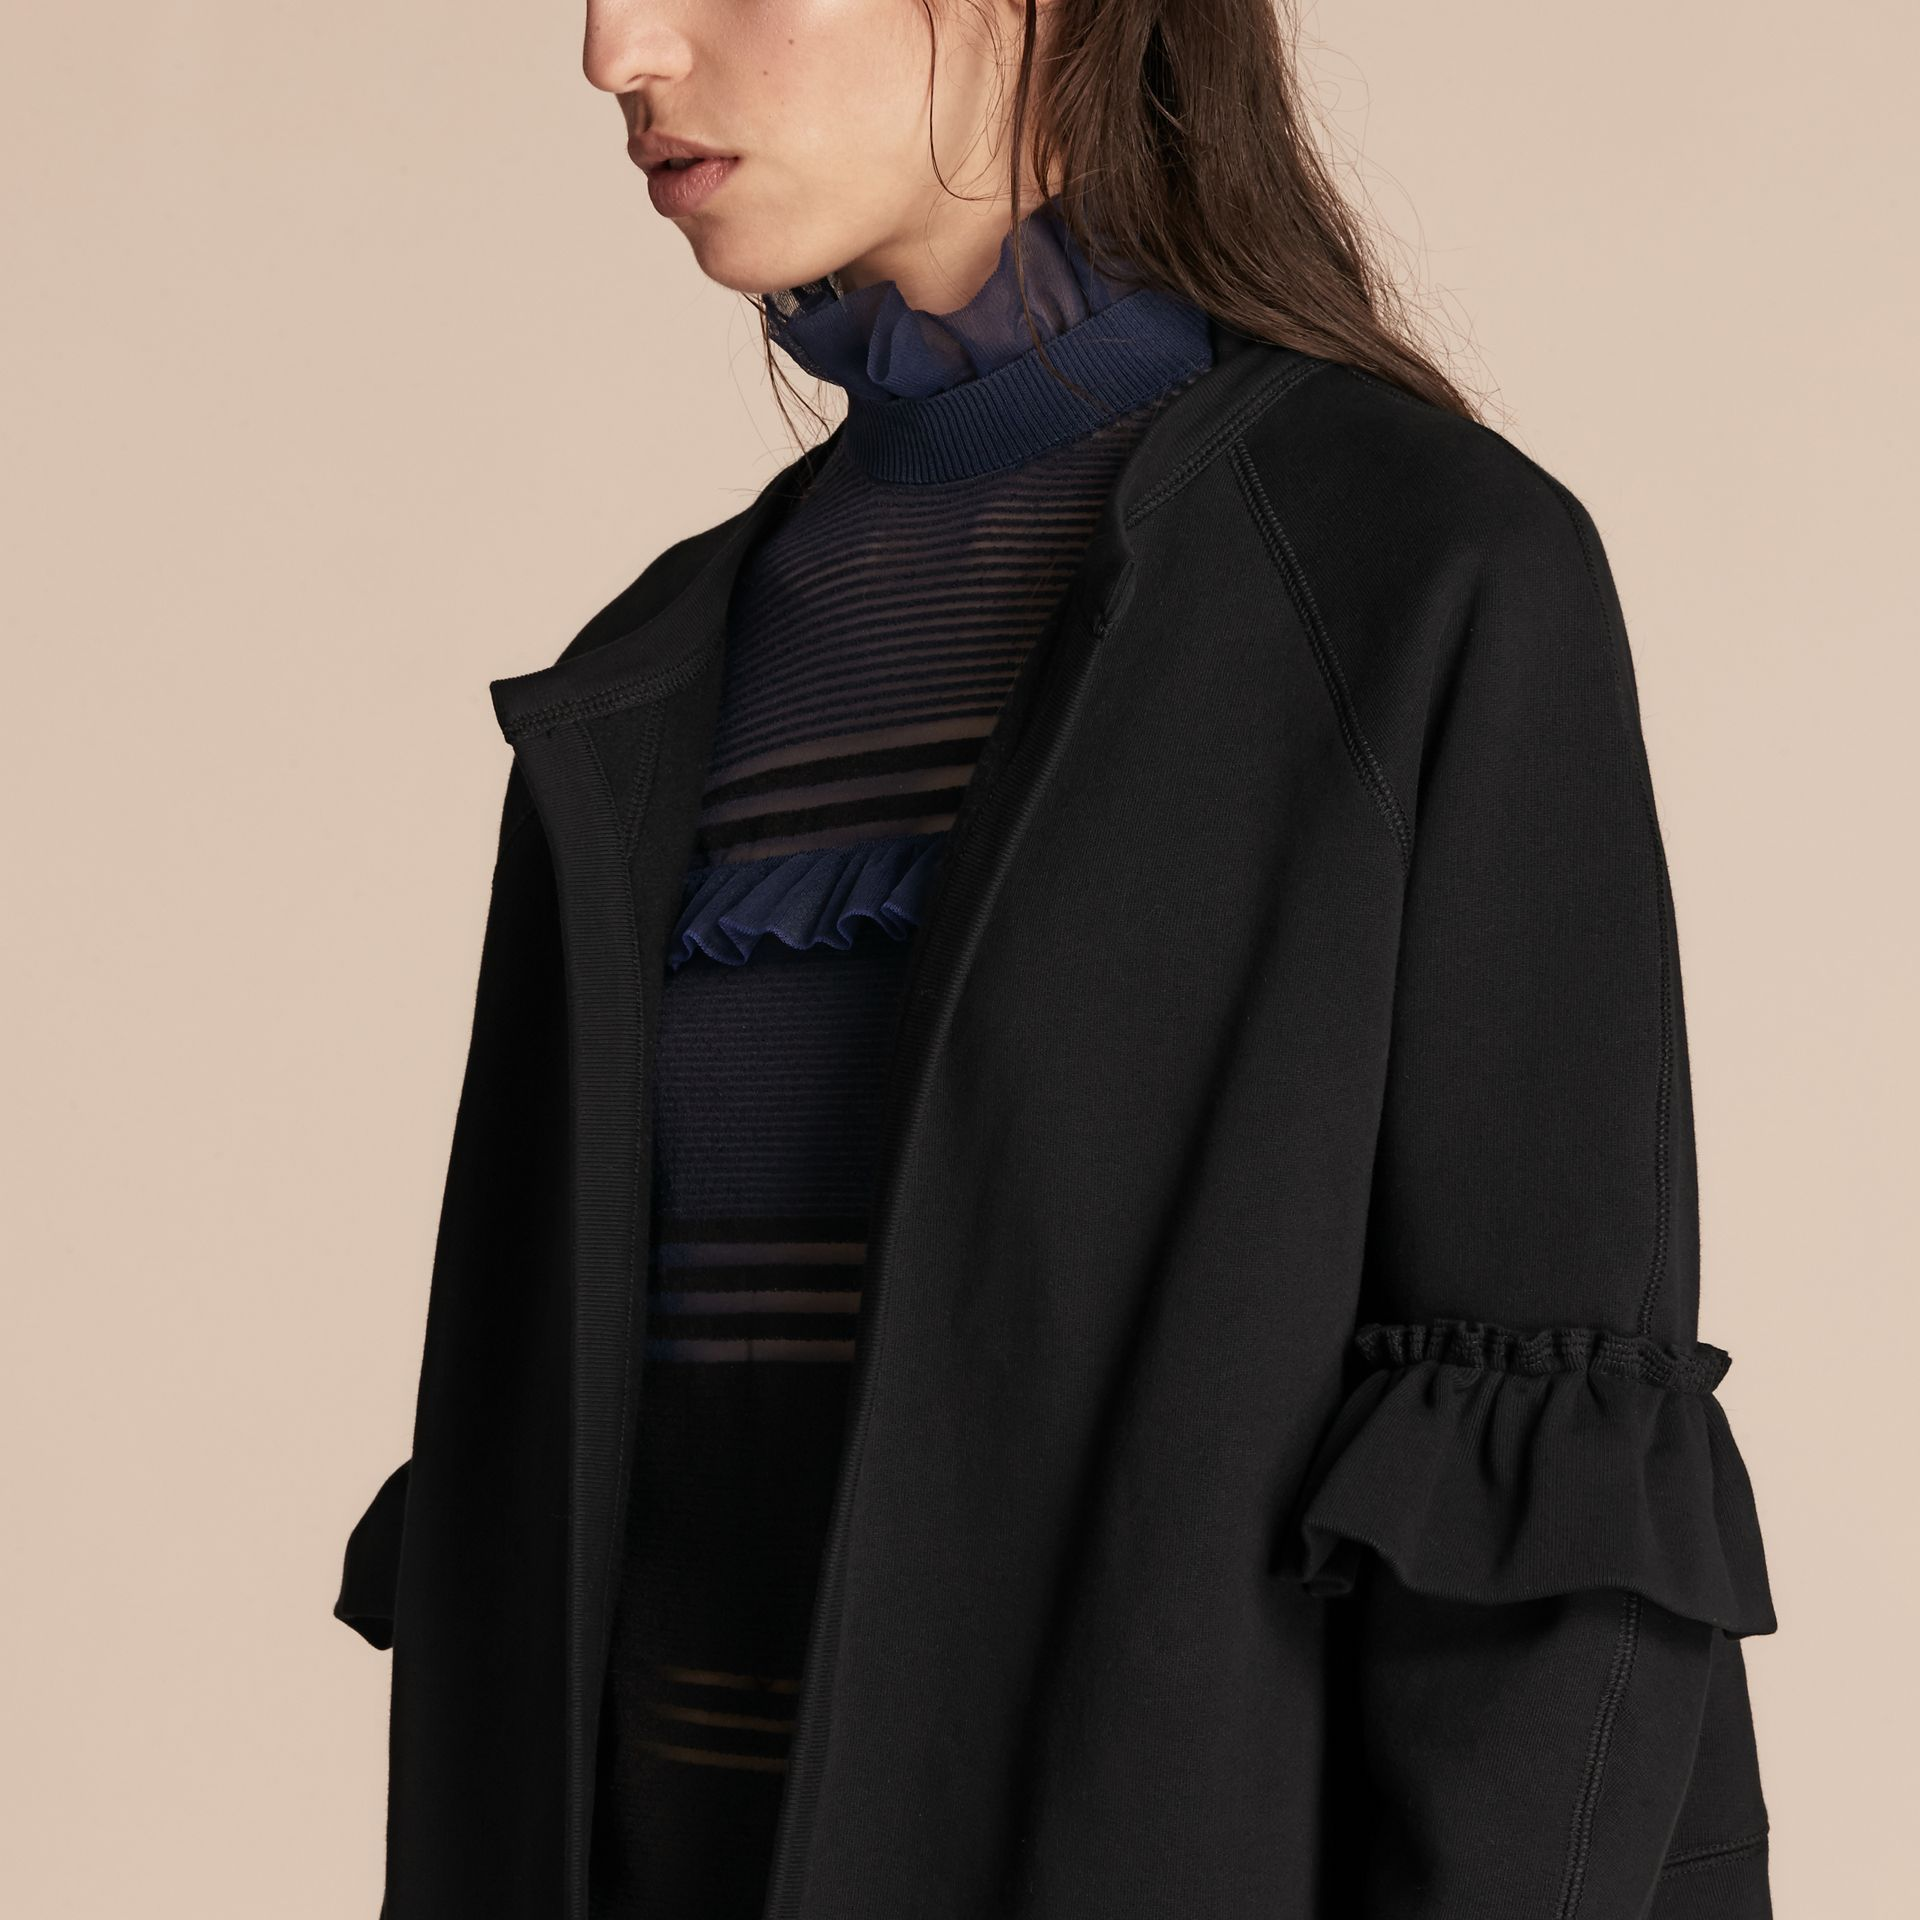 Black Cotton Blend Sweatshirt Jacket with Ruffle Sleeves Black - gallery image 5